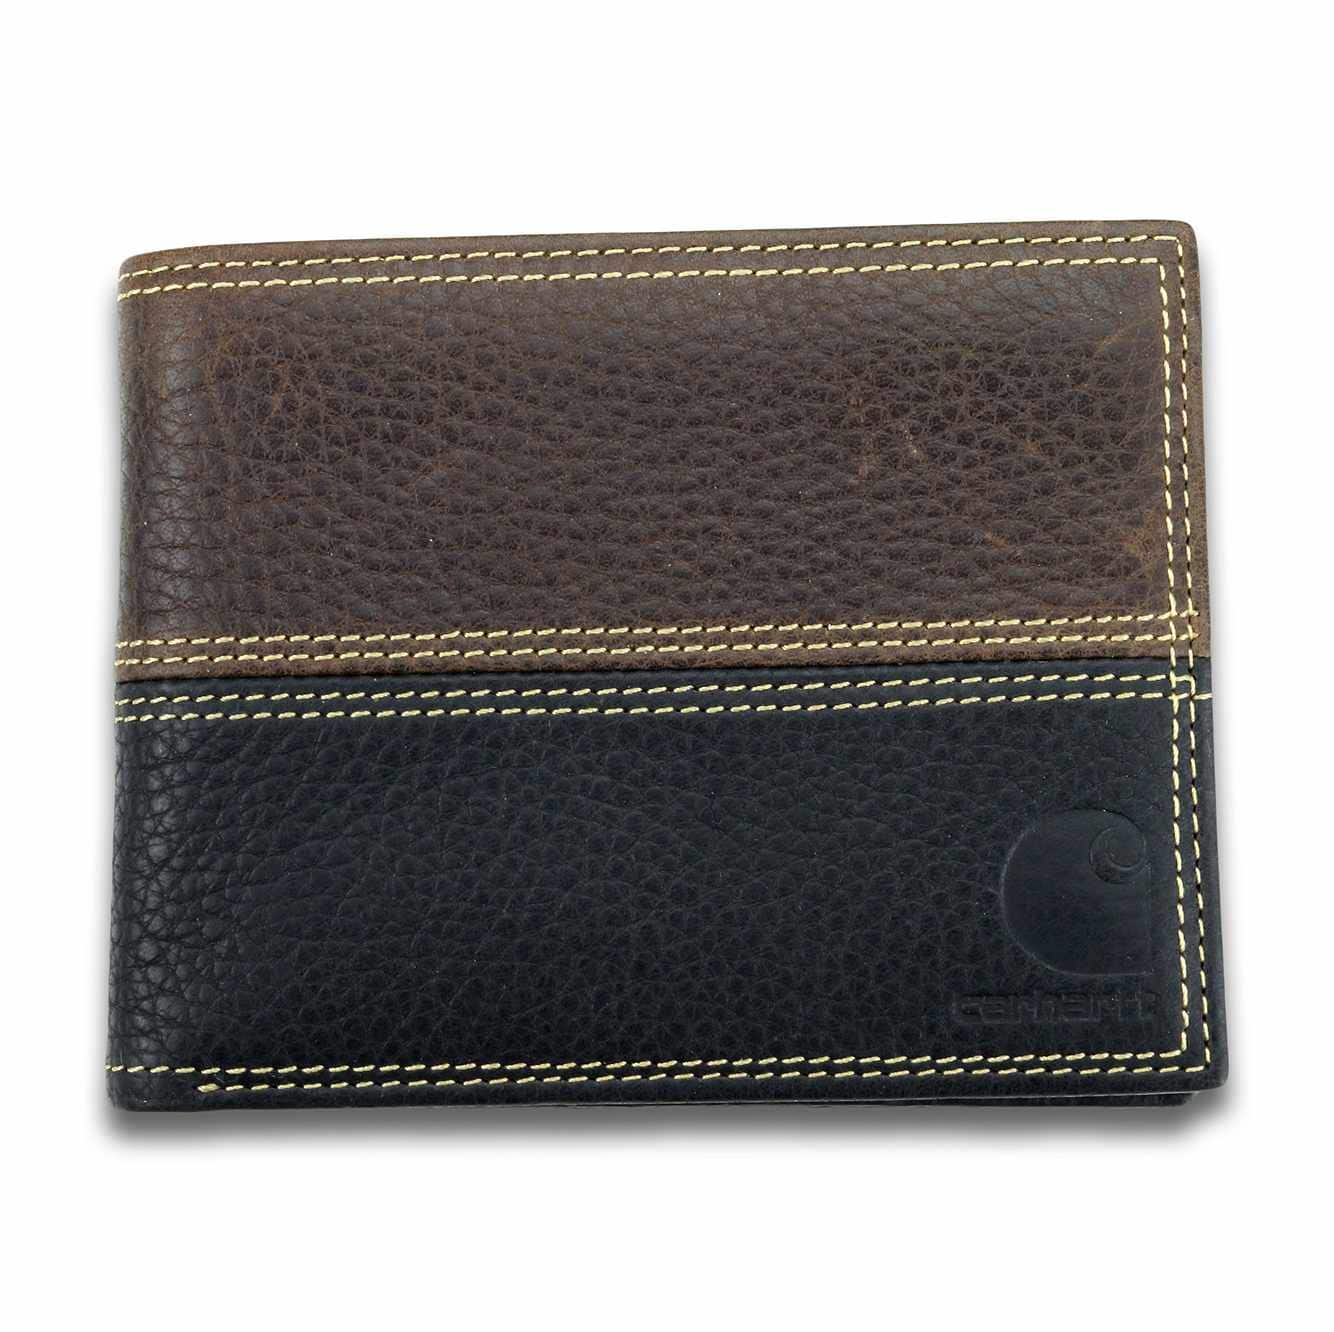 Picture of Rugged Passcase in Brown and Black Leather